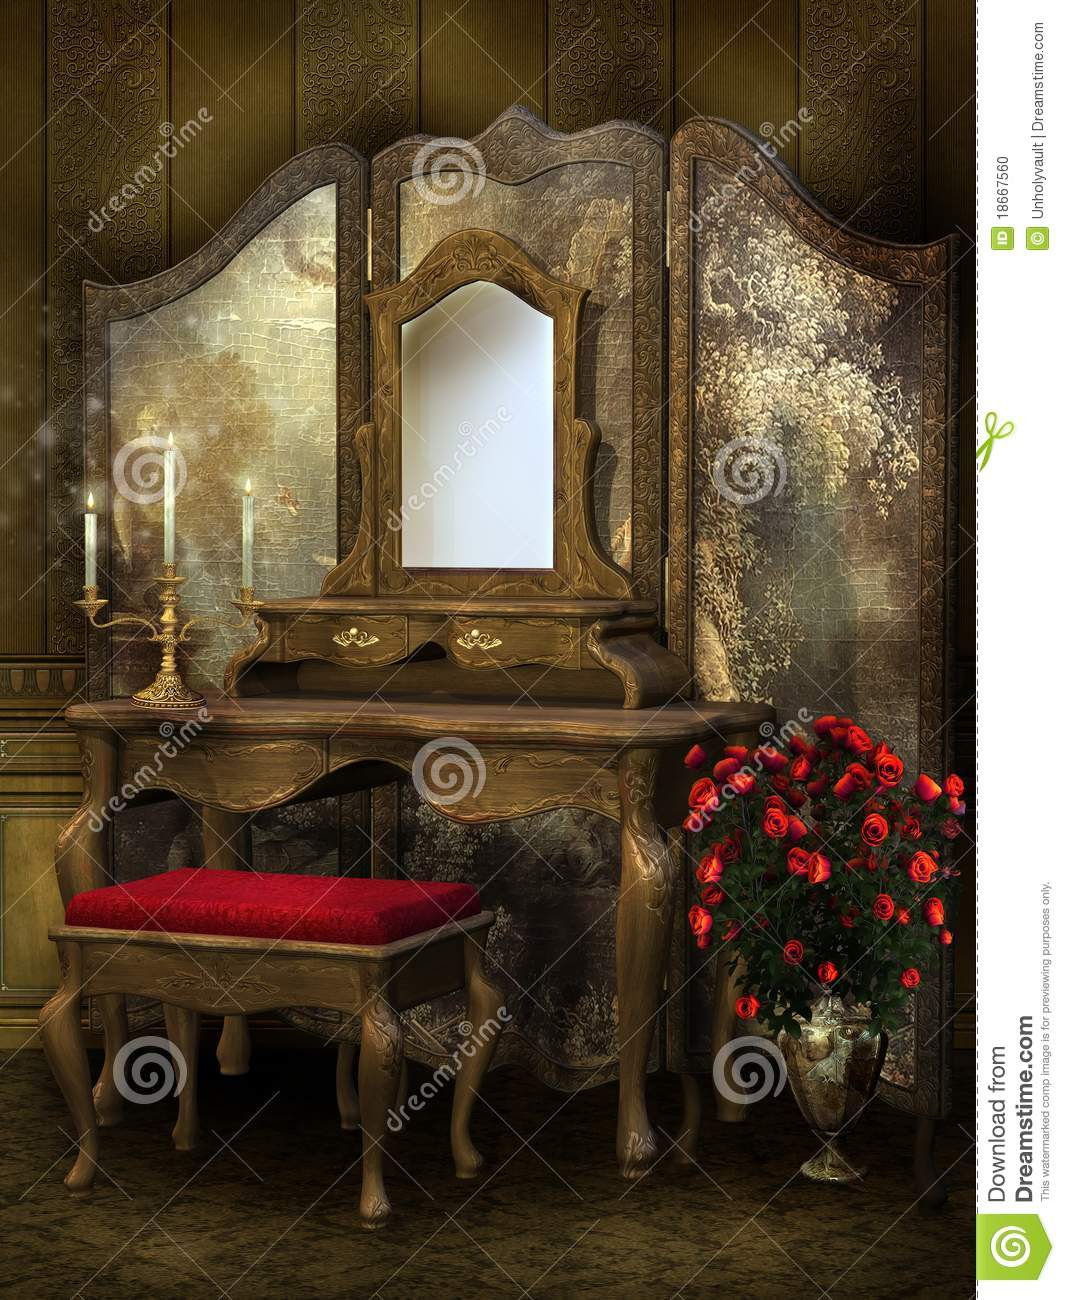 Old Victorian Room: Victorian Room With Roses Stock Illustration. Illustration